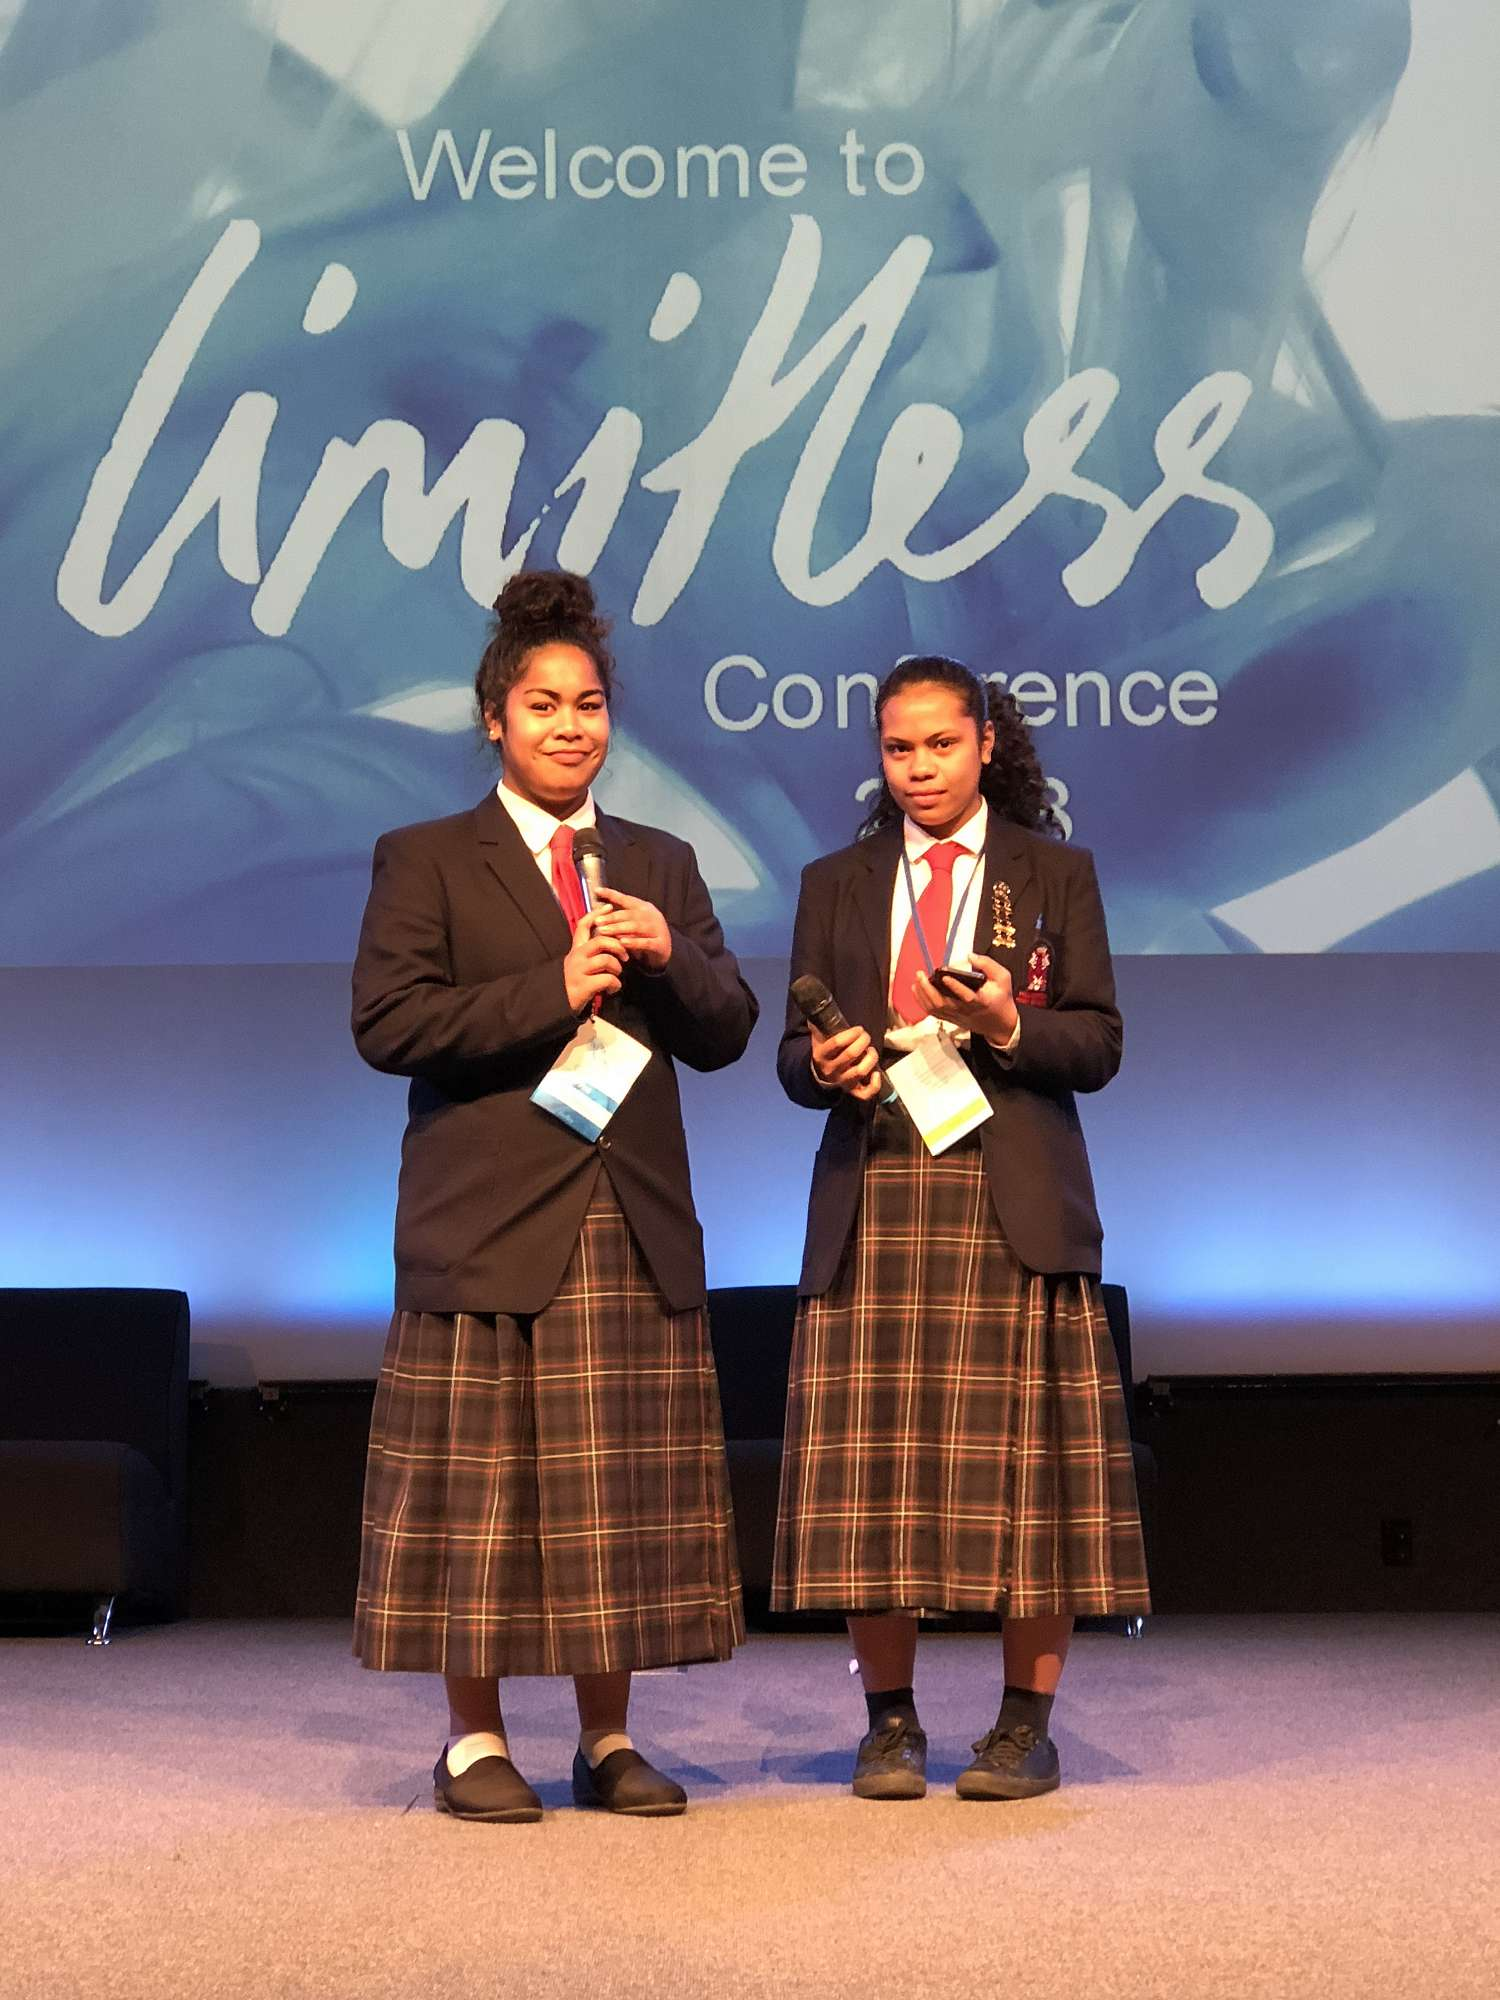 Avau and Lynette took to centre stage whilst at the LIMITLESS CONFERENCE and shared their talents